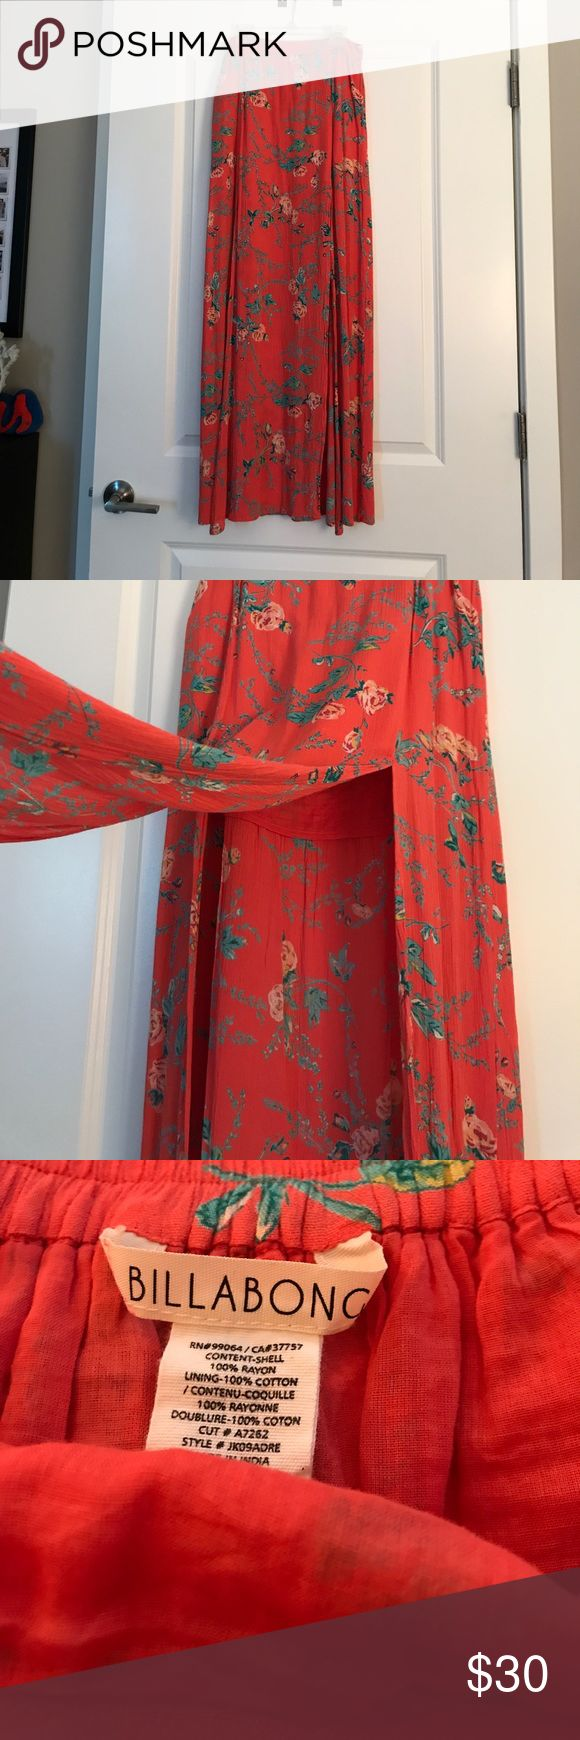 Floral Billabong maxi skirt This skirt has a touch of sexiness with two slits on either side of the middle panel. The lining is a mini skirt that is the length of where the slit starts. Billabong Skirts Maxi